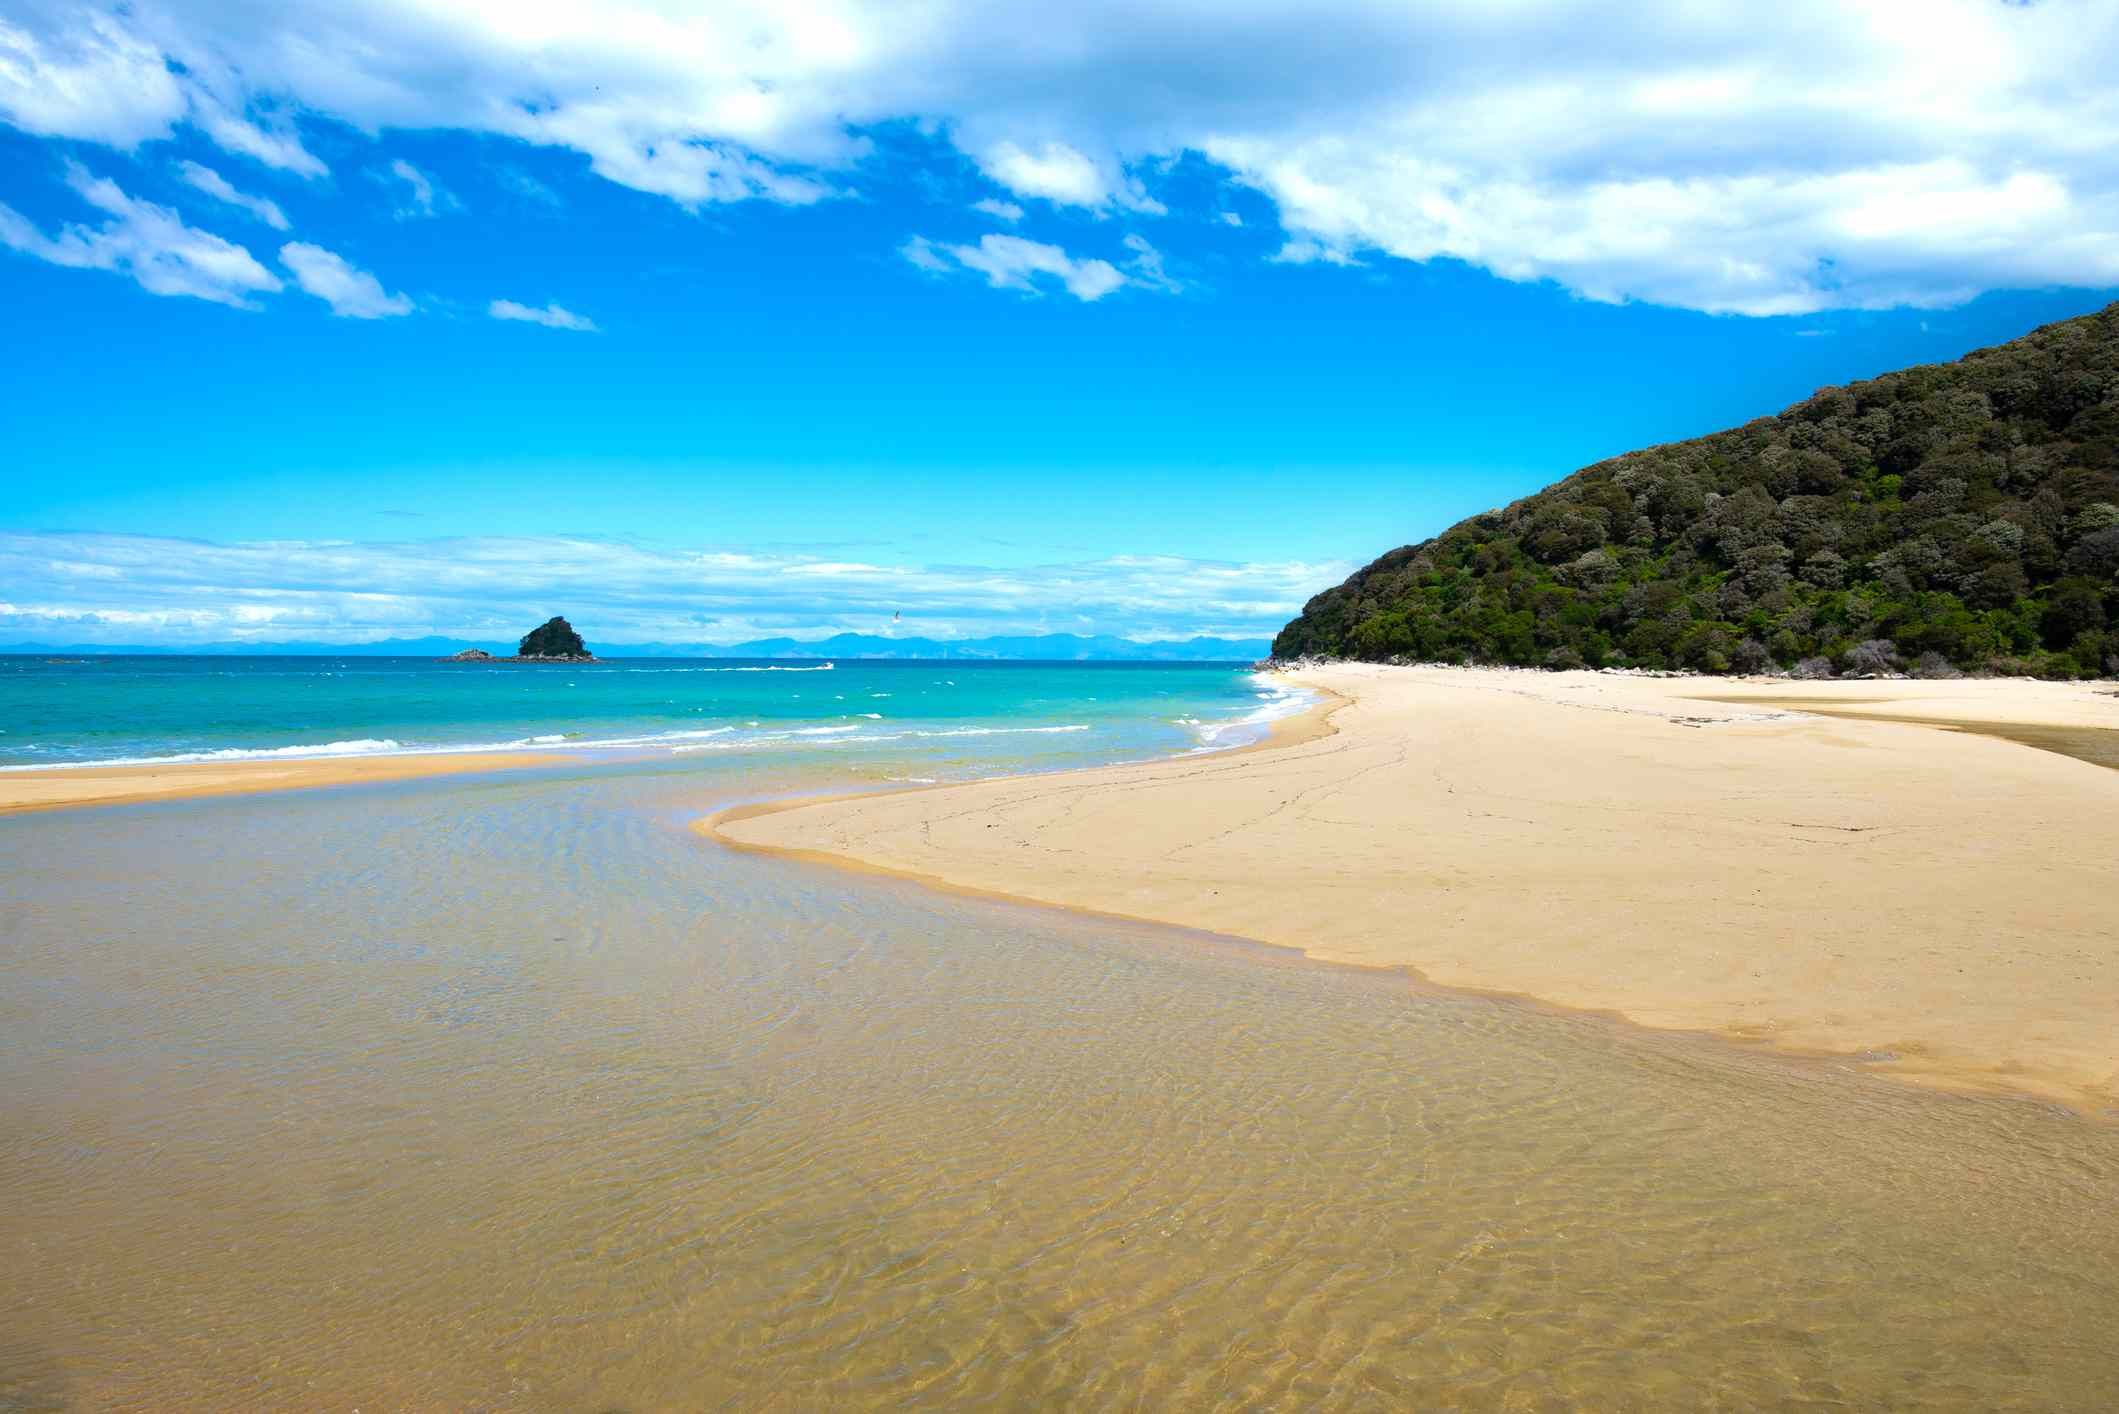 a wide, cream-colored stretch of beach along a blue/green sea with a lush, green mountain in the distance and a bright blue sky with high clouds at Abel Tasman National Park